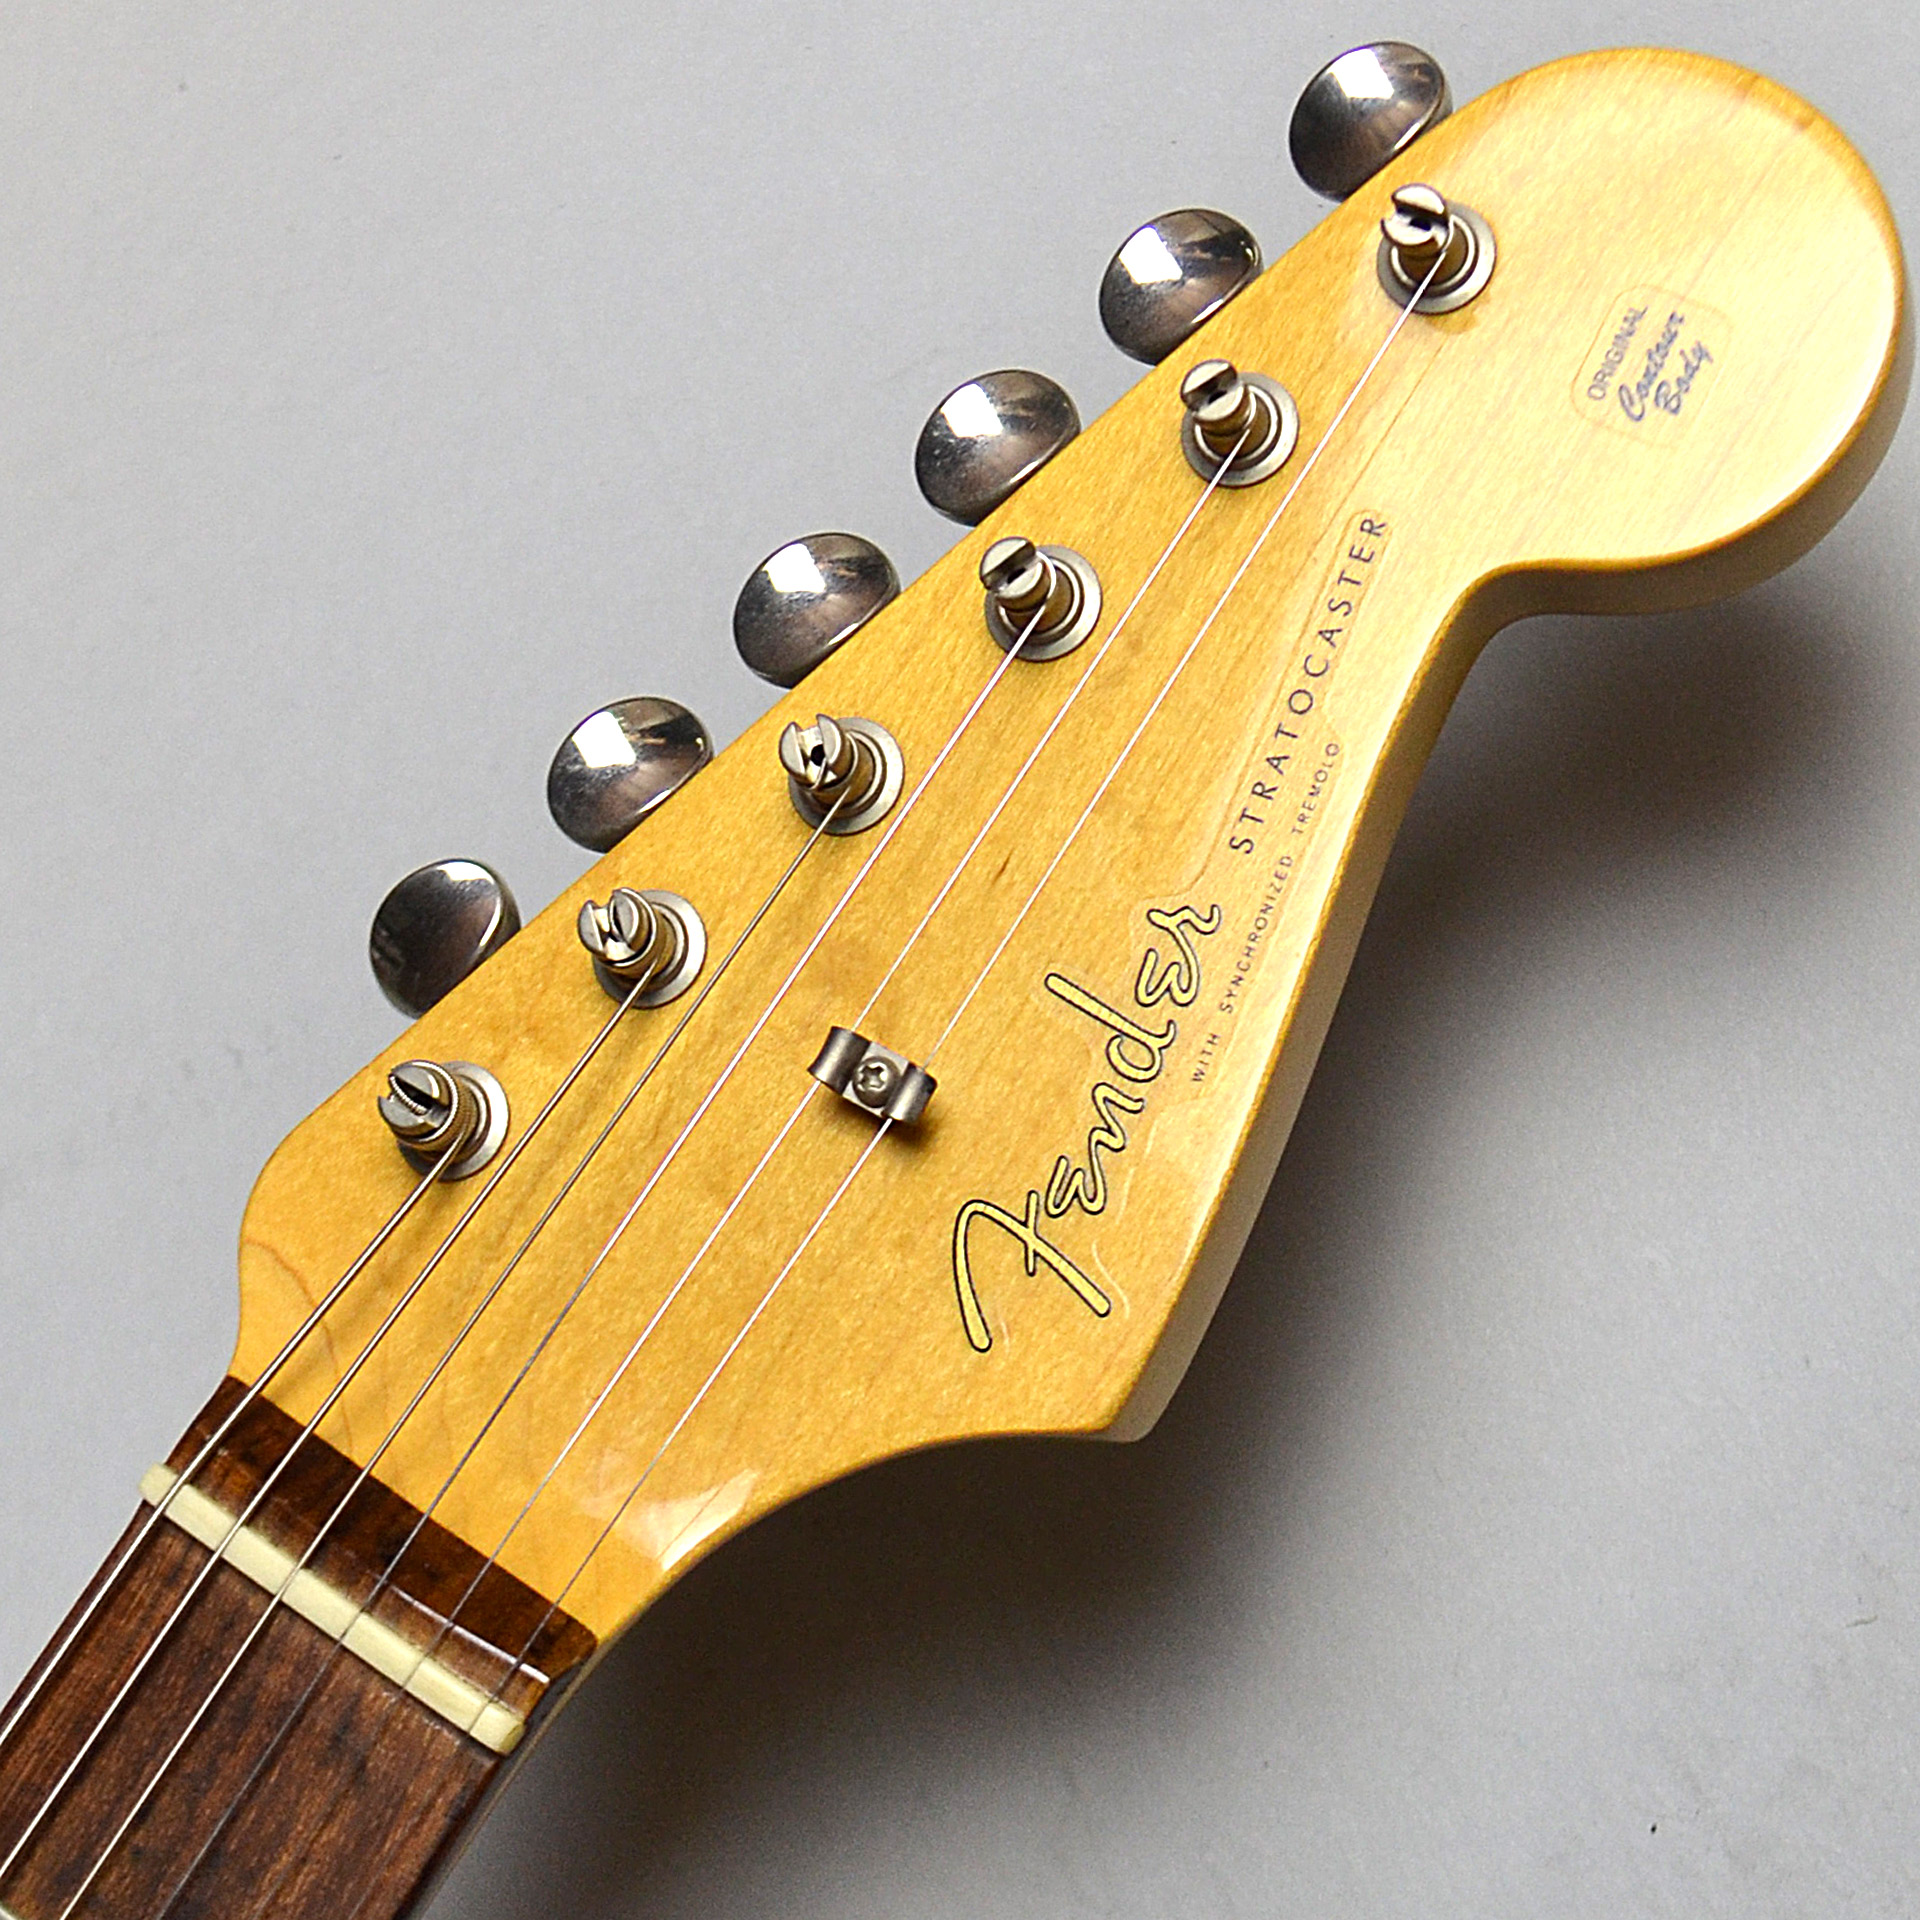 American Vintage 59 Stratocasterのヘッド画像